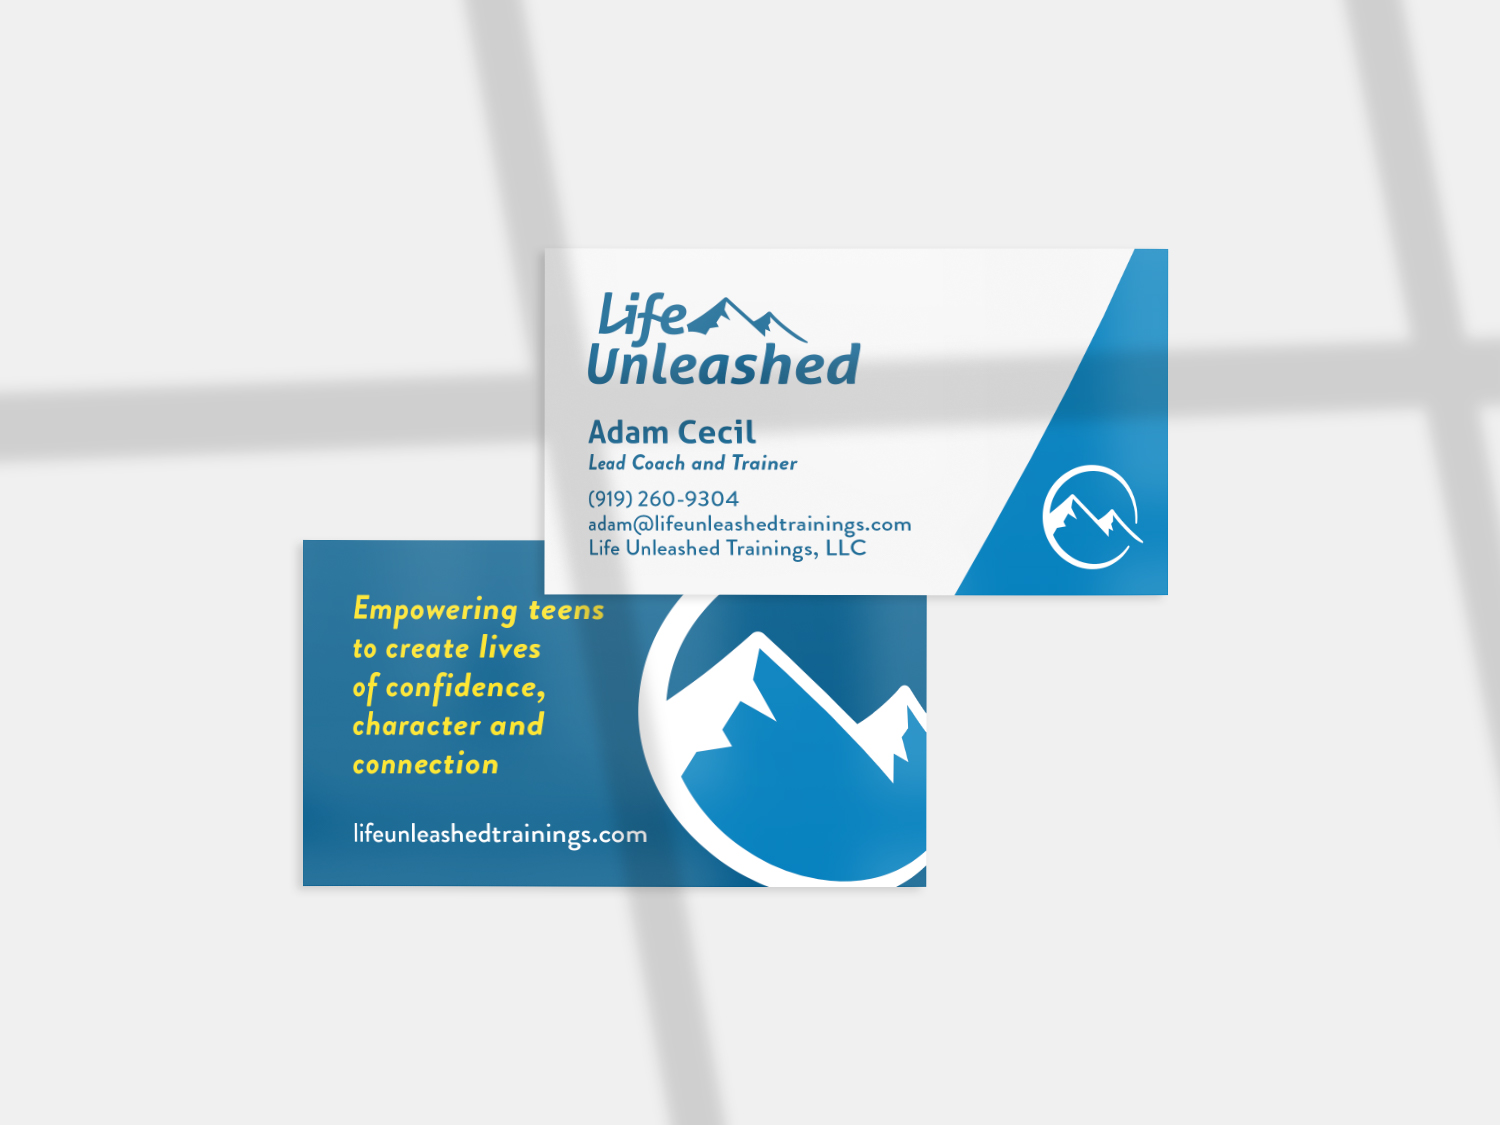 life-unleashed-bc.jpg